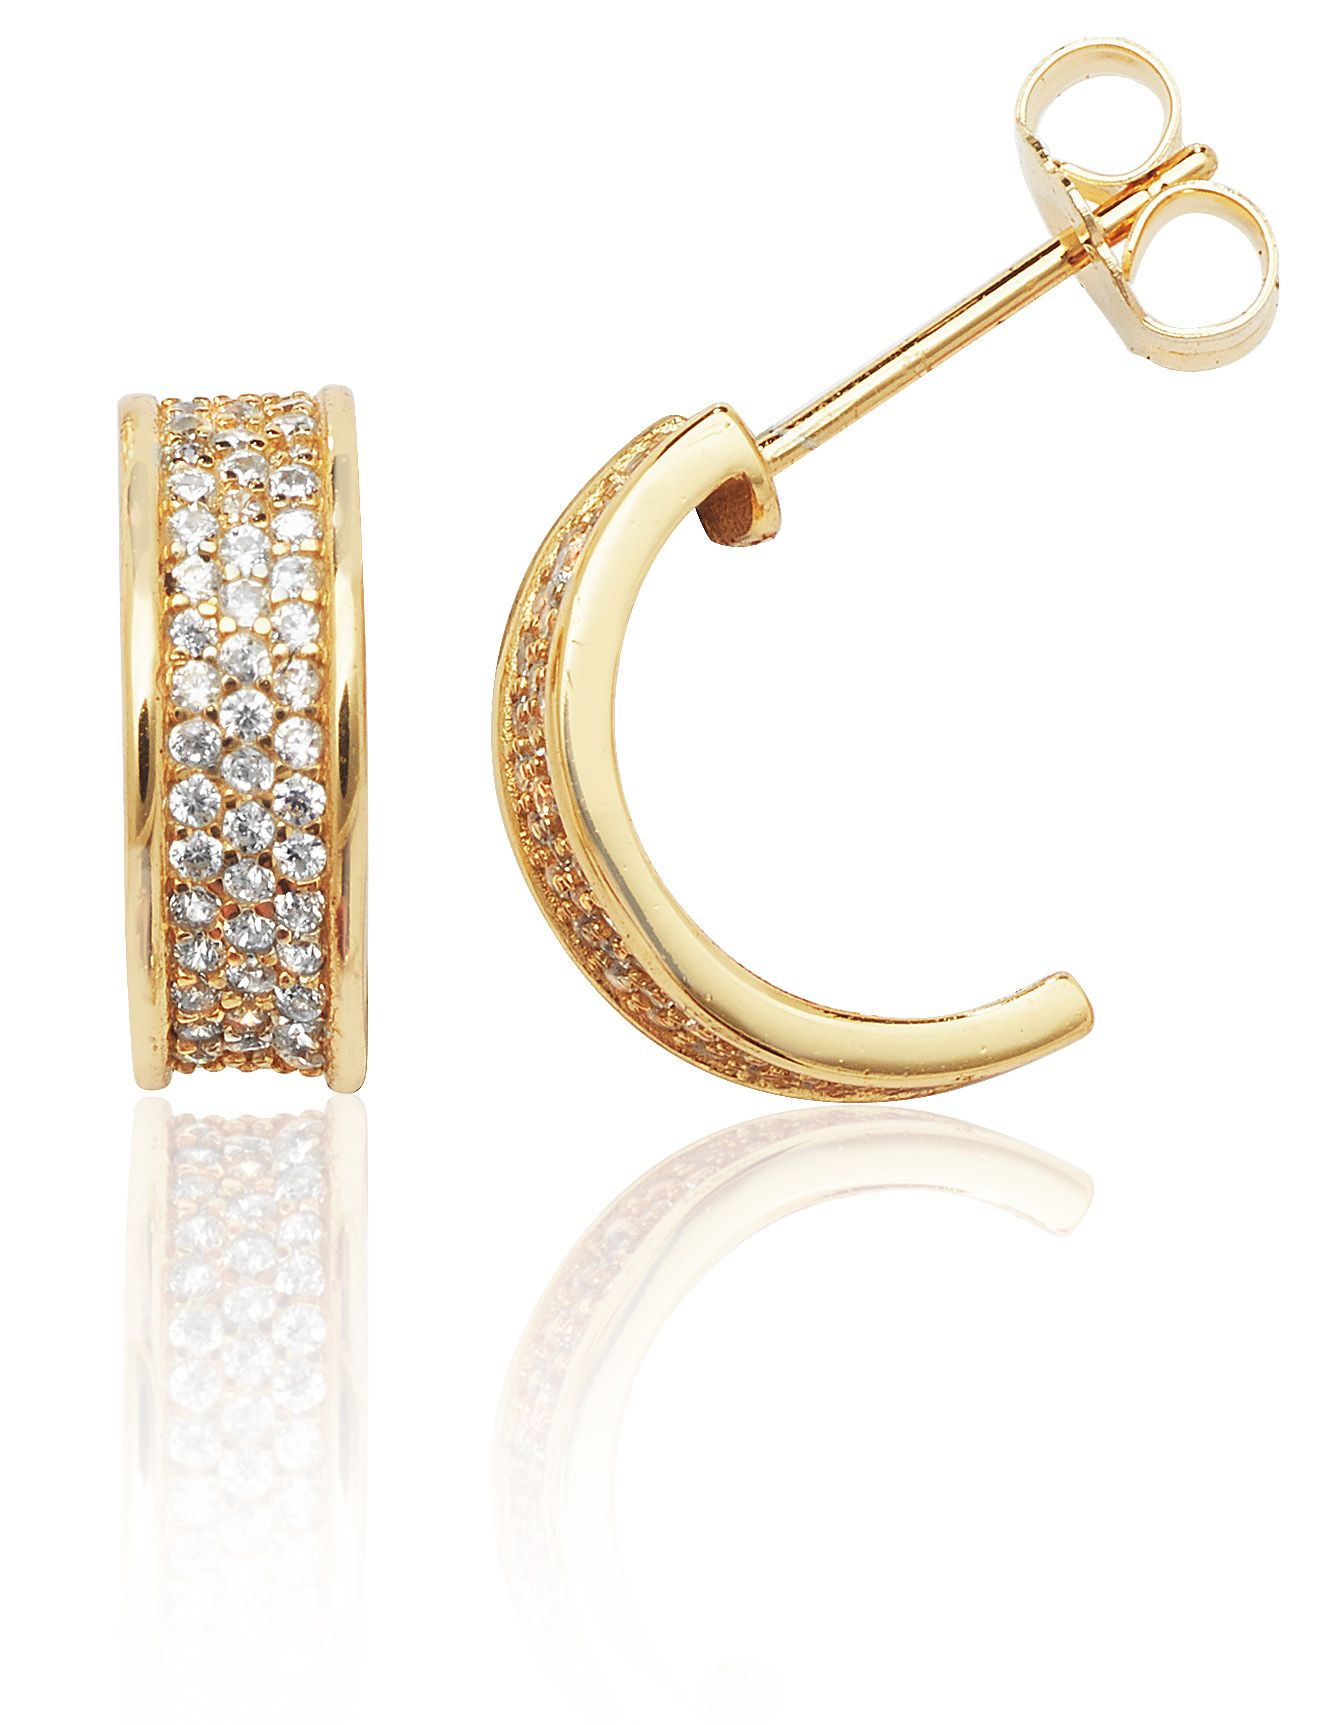 27d8fbcde Statement sterling silver with yellow gold plating half hoop stud earrings,  set with brilliant cut cubic zirconia stones, to create the WOW factor.